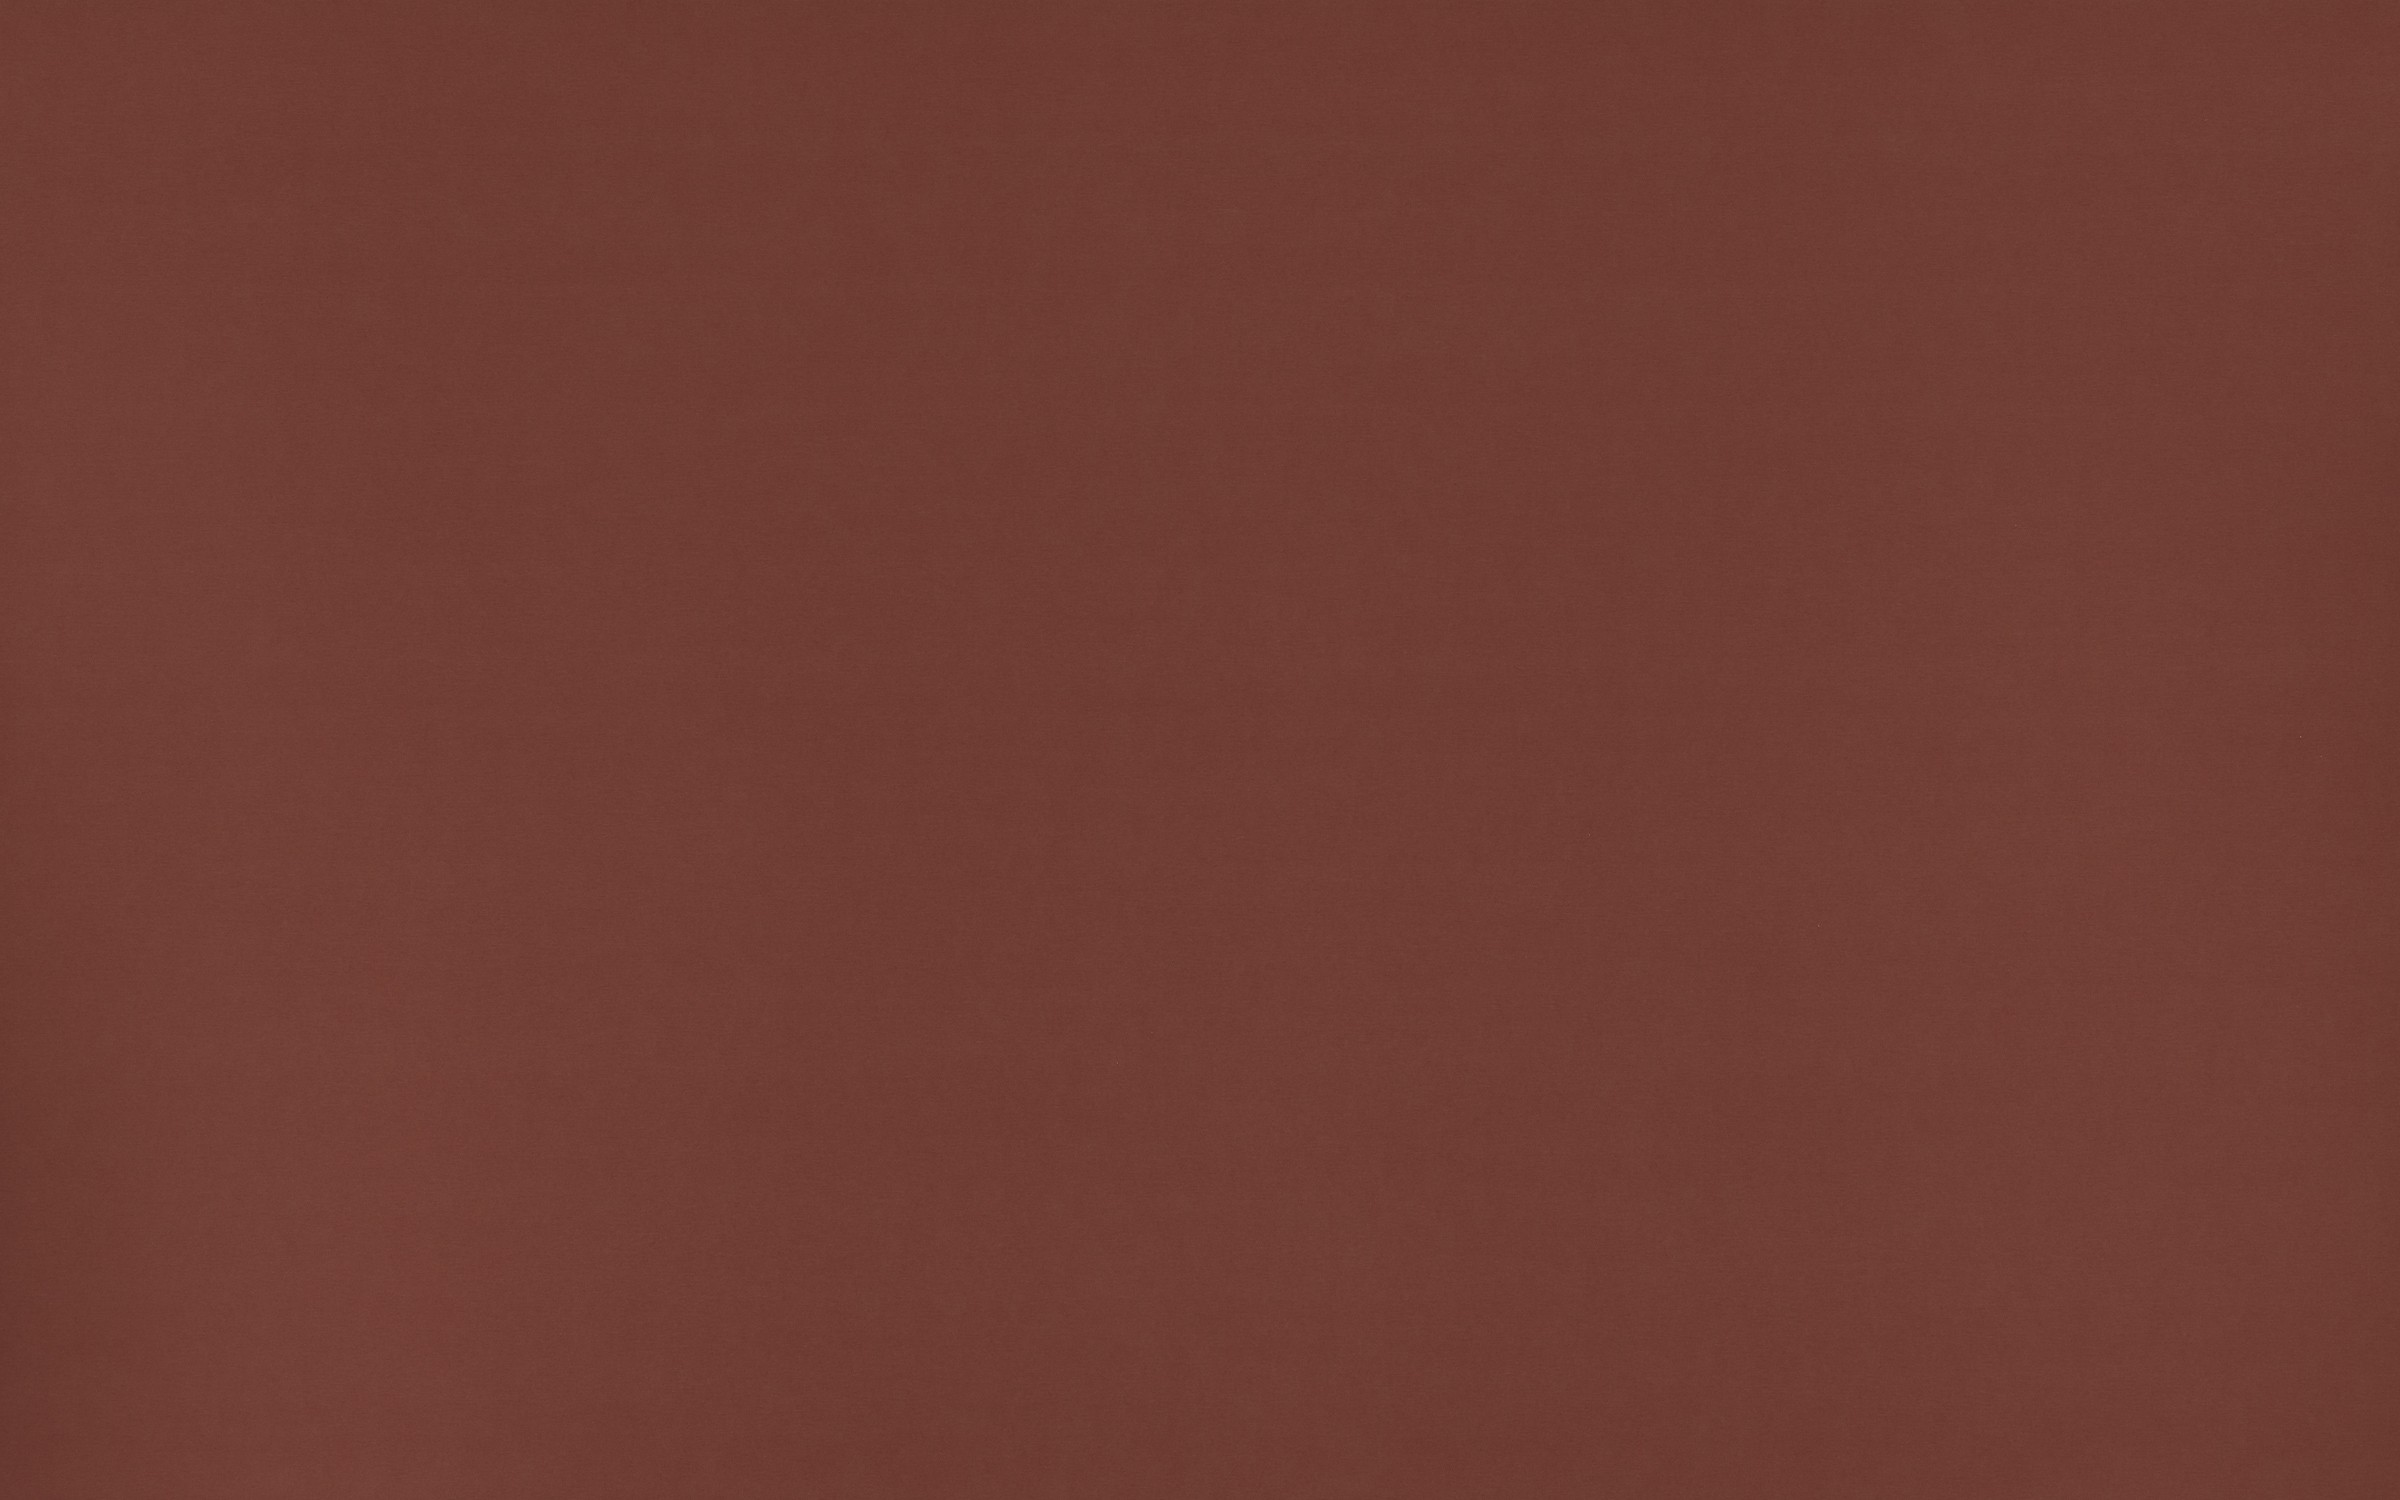 Copper Laminate Countertops P 324 Brushed Copper Brite Laminate Countertops